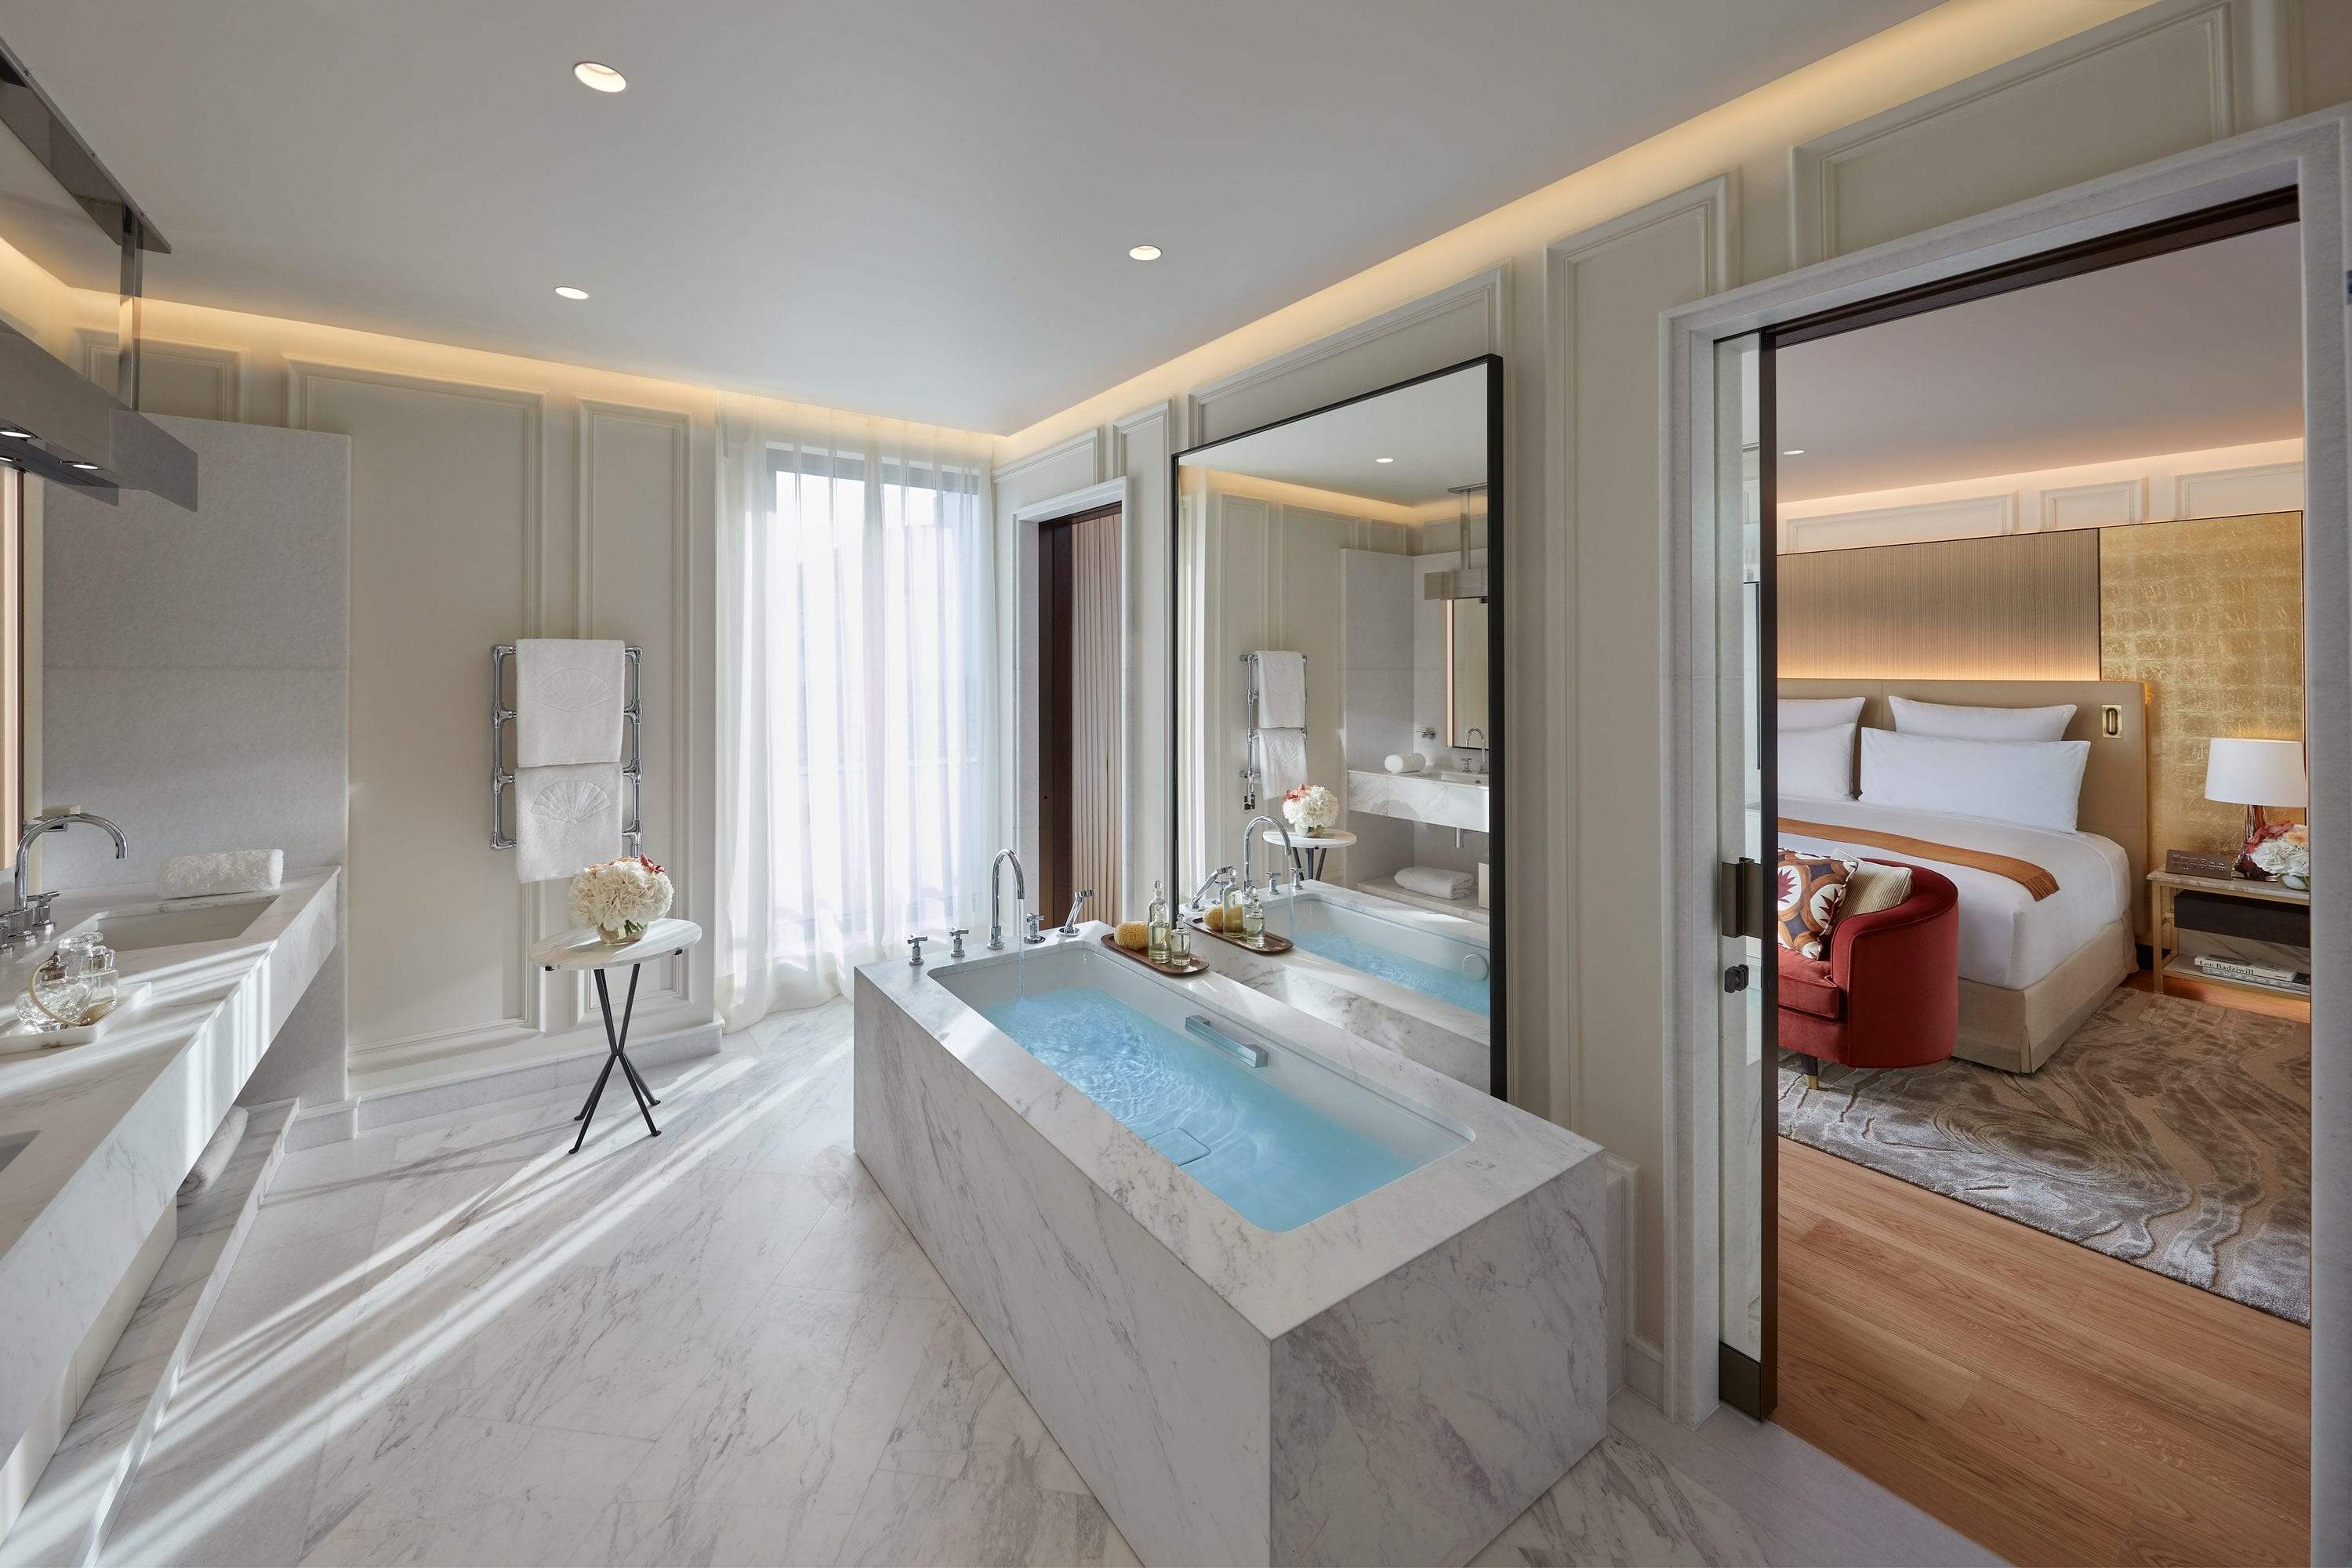 Large ensuite with marble bathtub